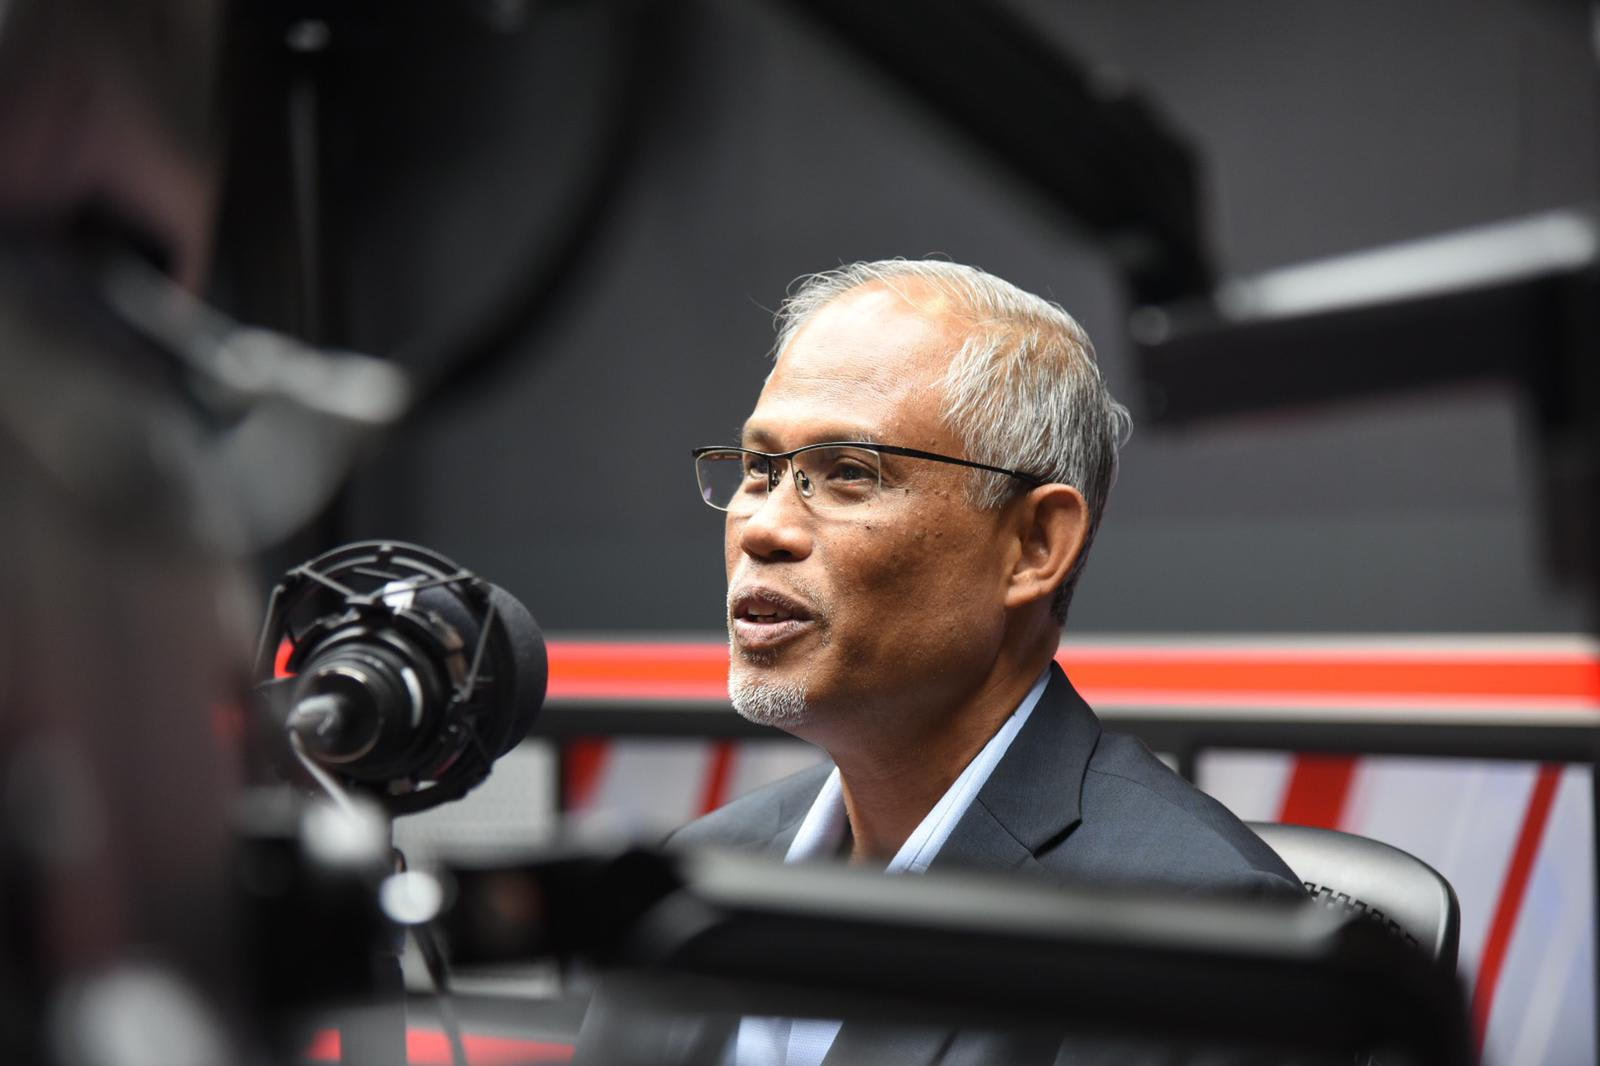 CNA938 interview: Masagos Zulkifli warns of calamity if Singapore doesn't deal with climate change threat